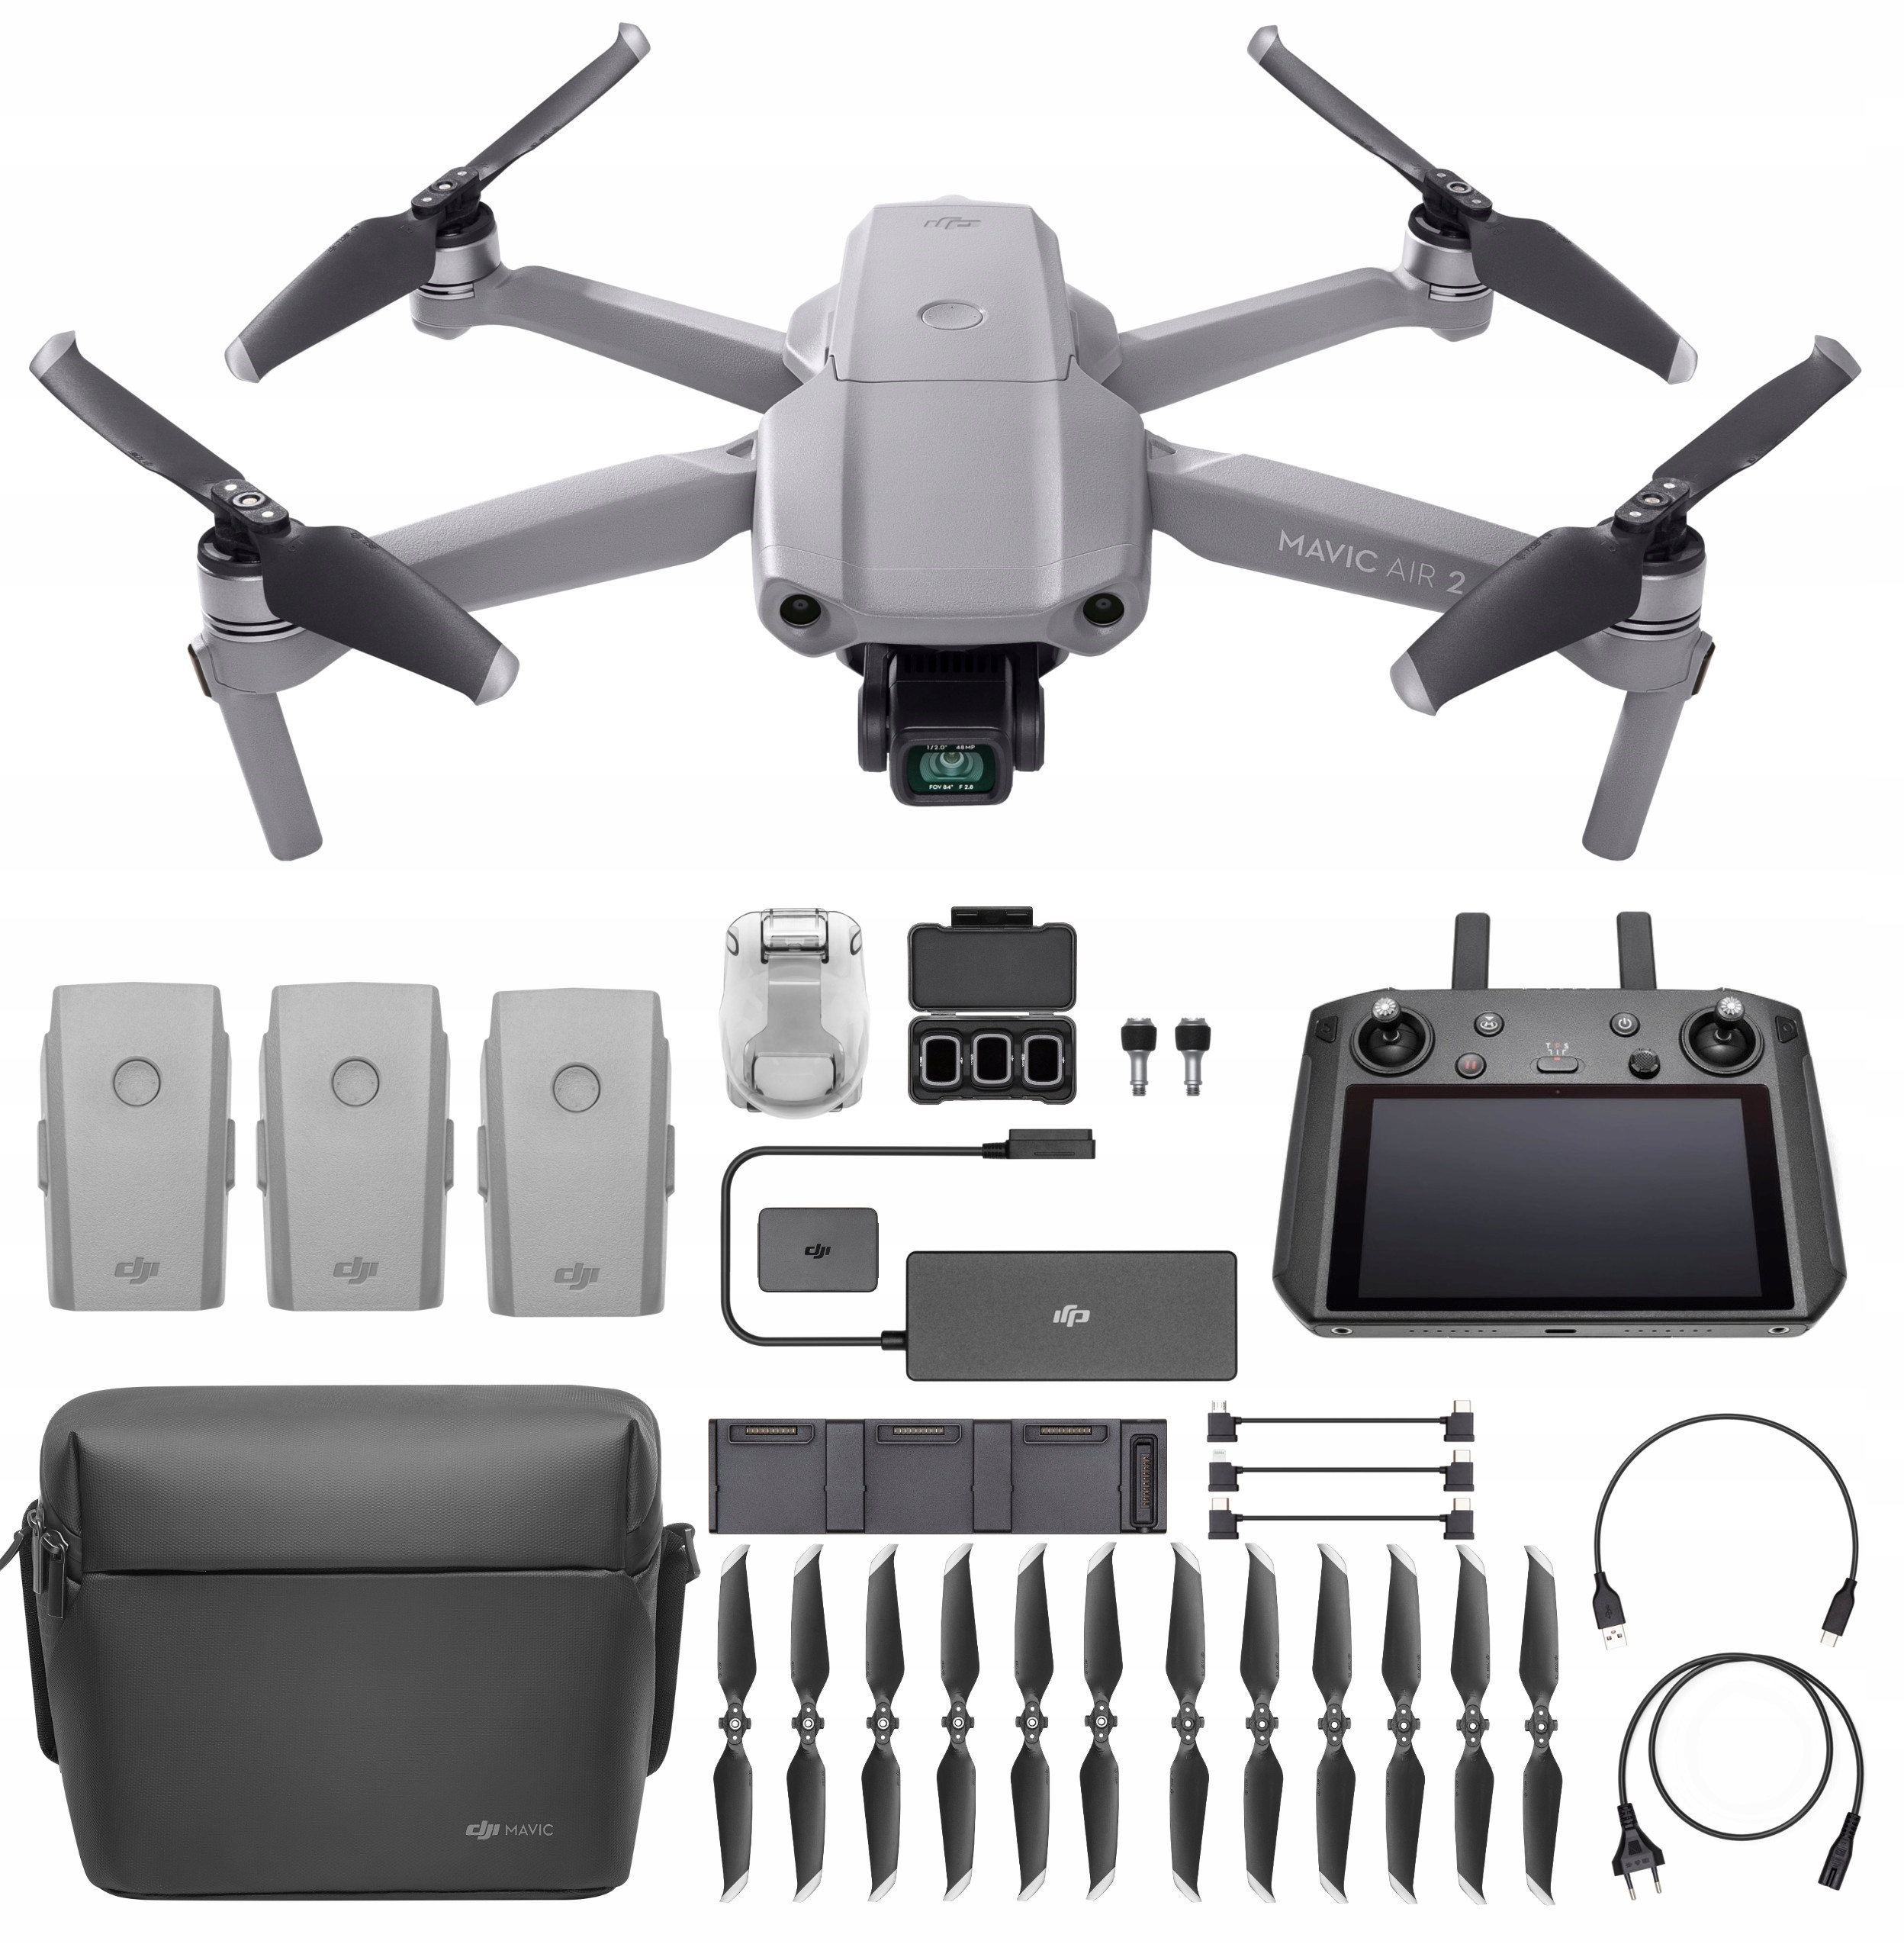 DJI MAVIC AIR 2 FLY MORE COMBO SMART CONTOLLER